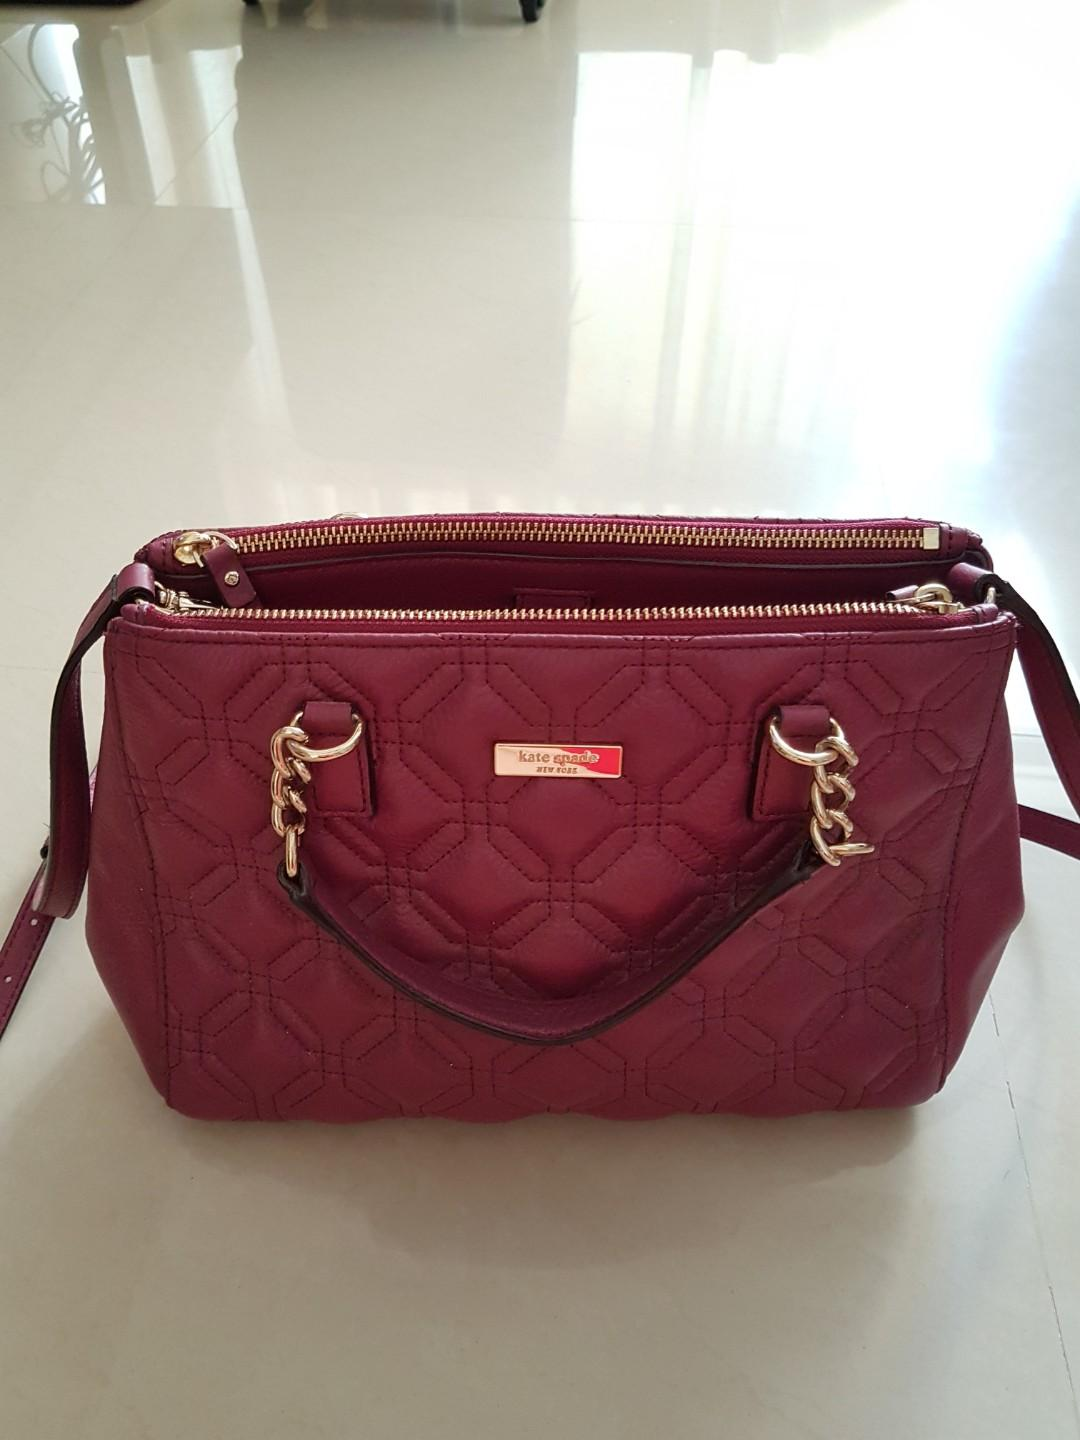 Preloved Kate Spade HandBag